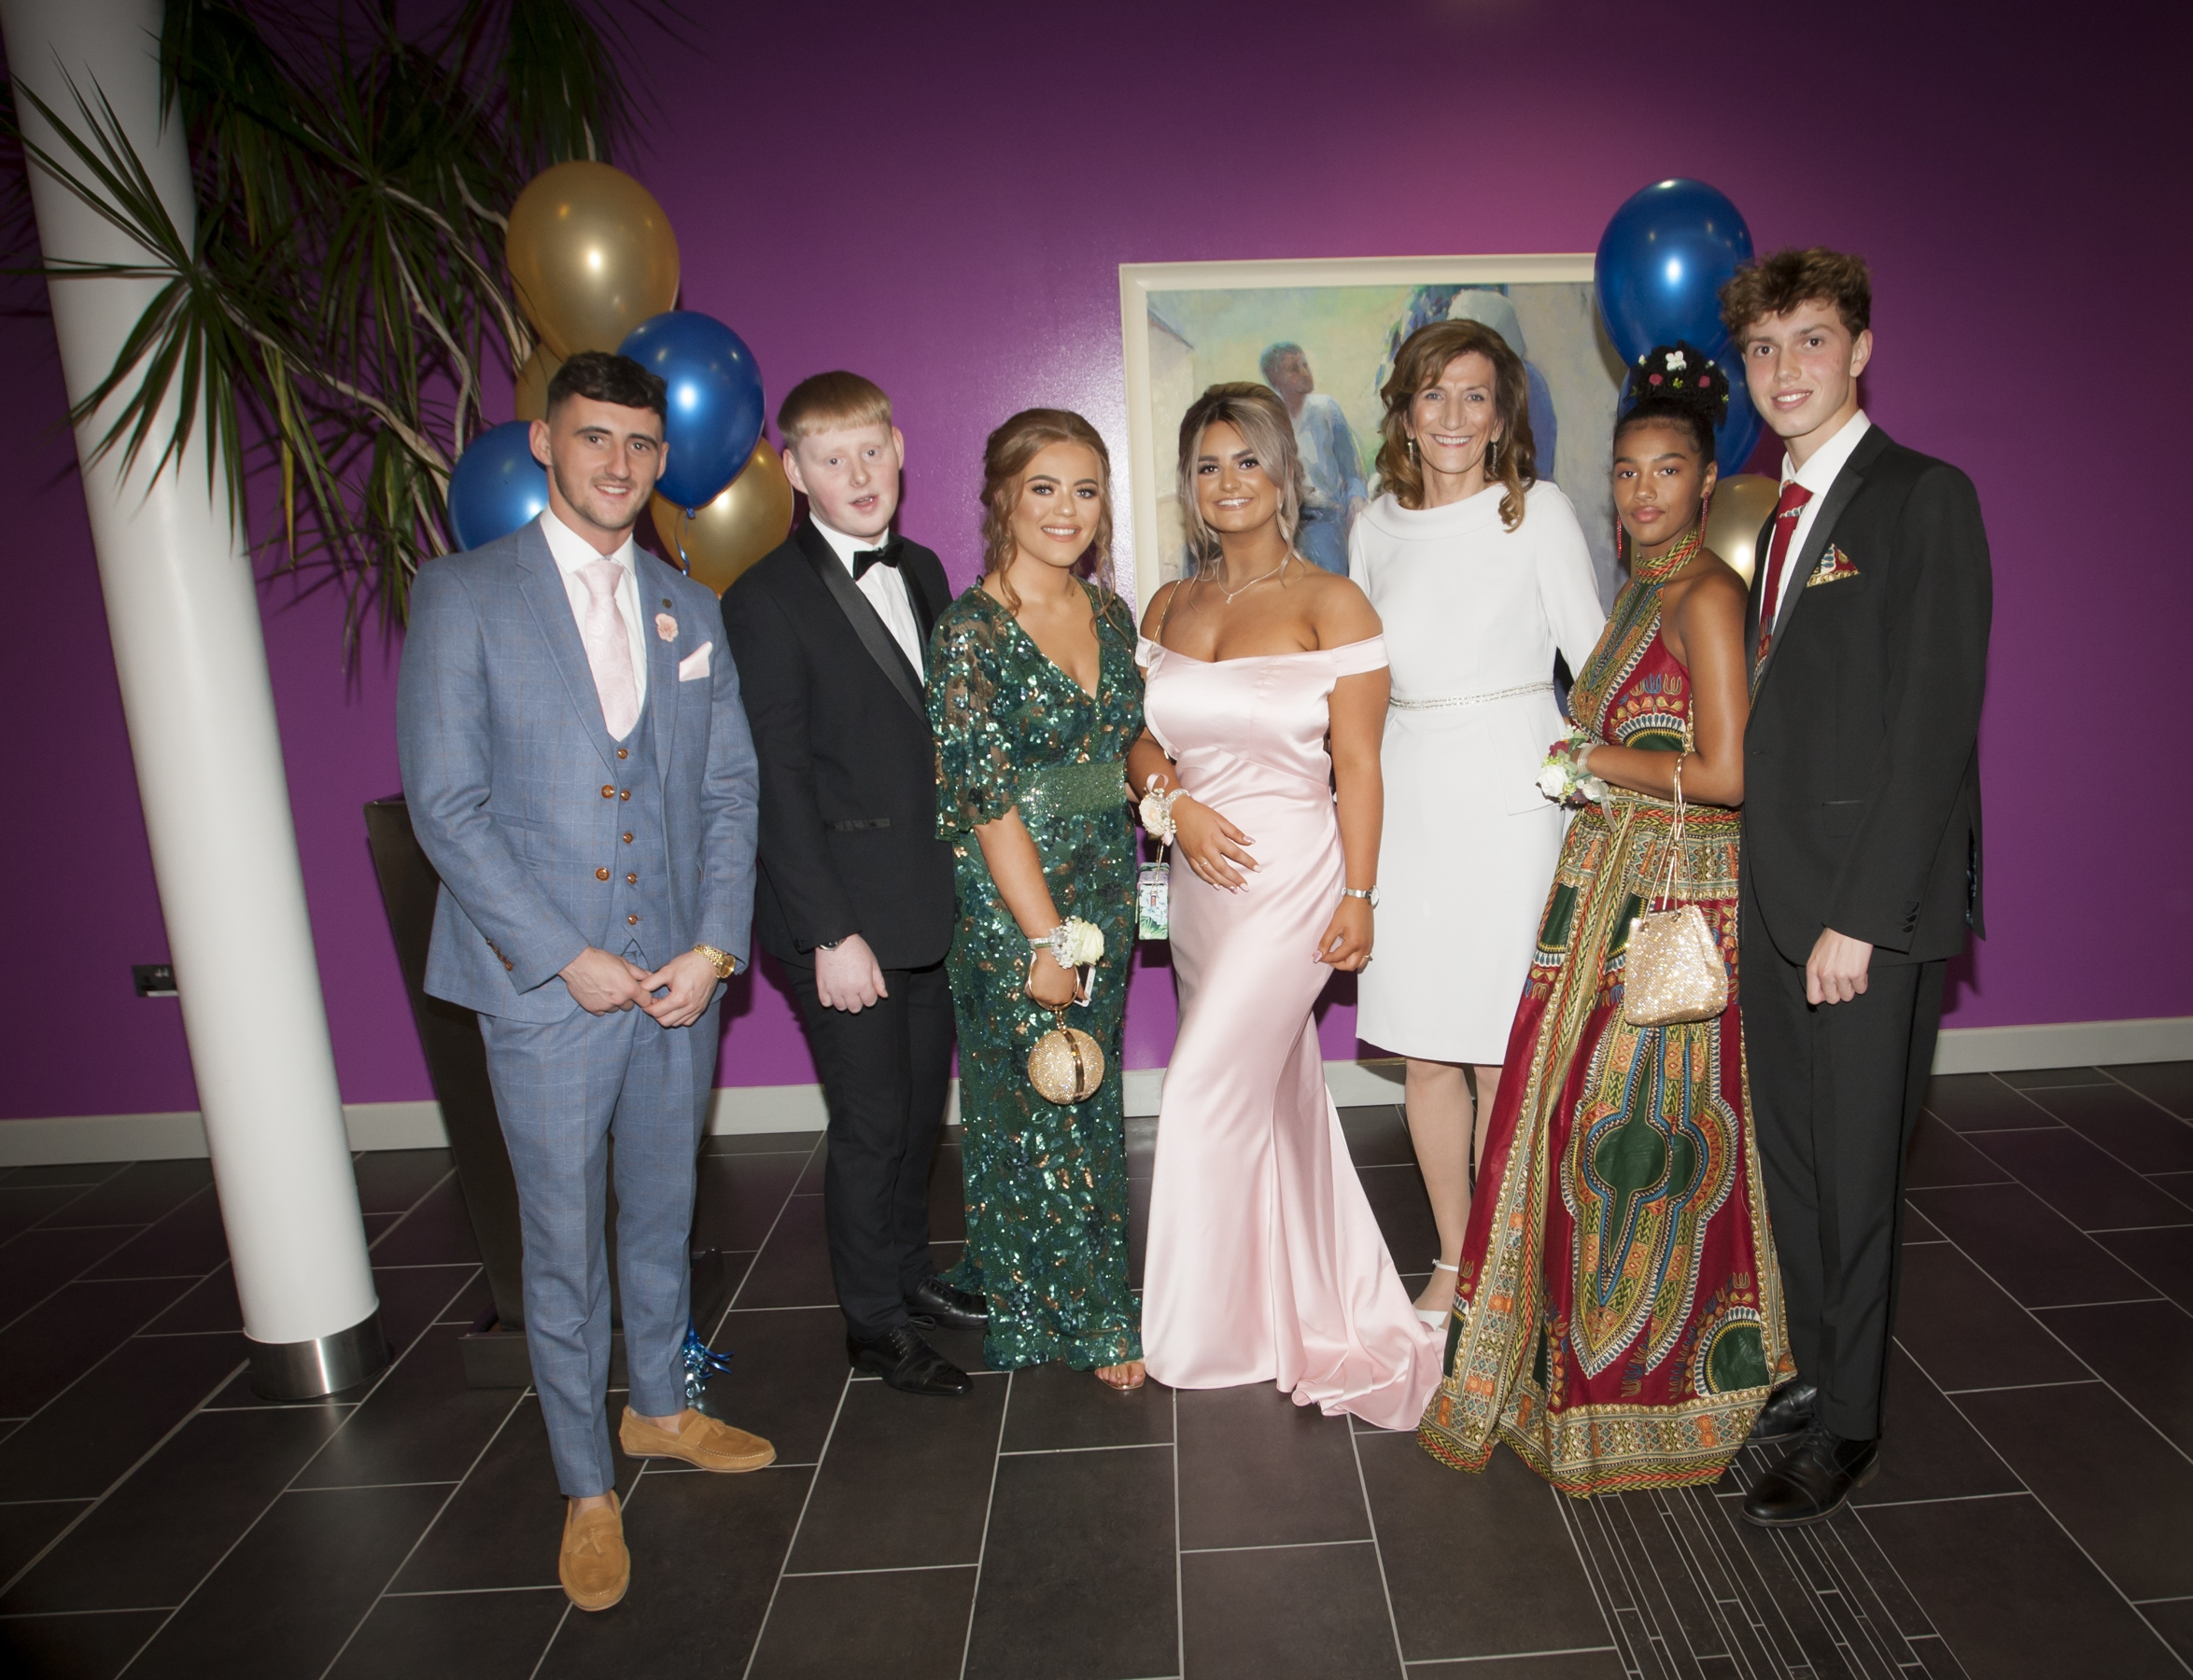 St. Mary's College Principal Marie Lindsay pictured with Jason Wylie, Shea Harrigan, Mollie McMonagle, Brianna Corcoran, Ellen Glackin and Donncha Gilmore on Thursday night. (Photos: Jim McCafferty Photography)